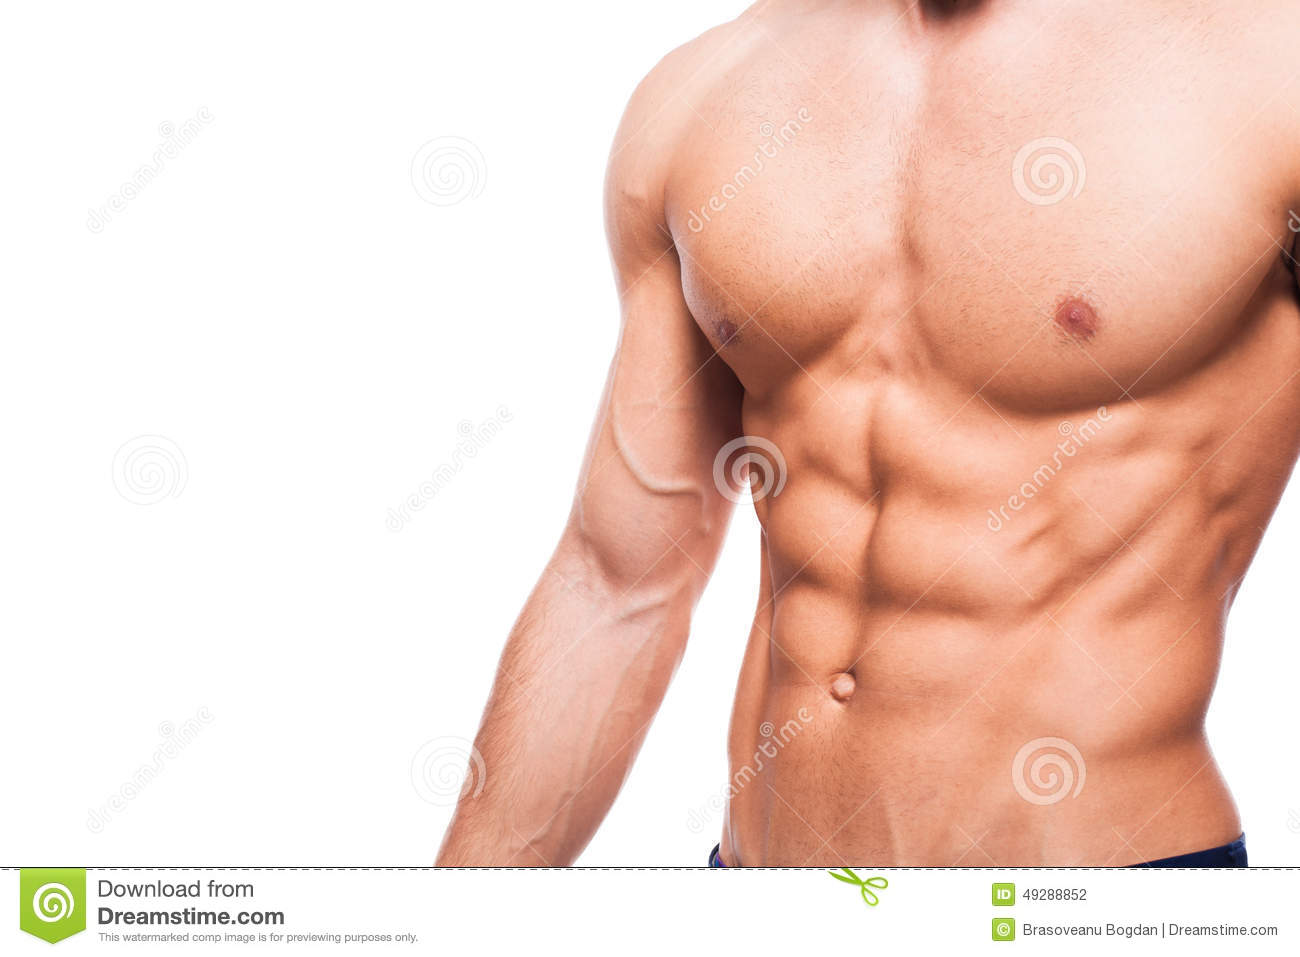 Naked athletic body Handsome Adult Man With Healthy Athletic Body Half Naked On White Background Stock Photo Image Of Adult Athlete 49288852